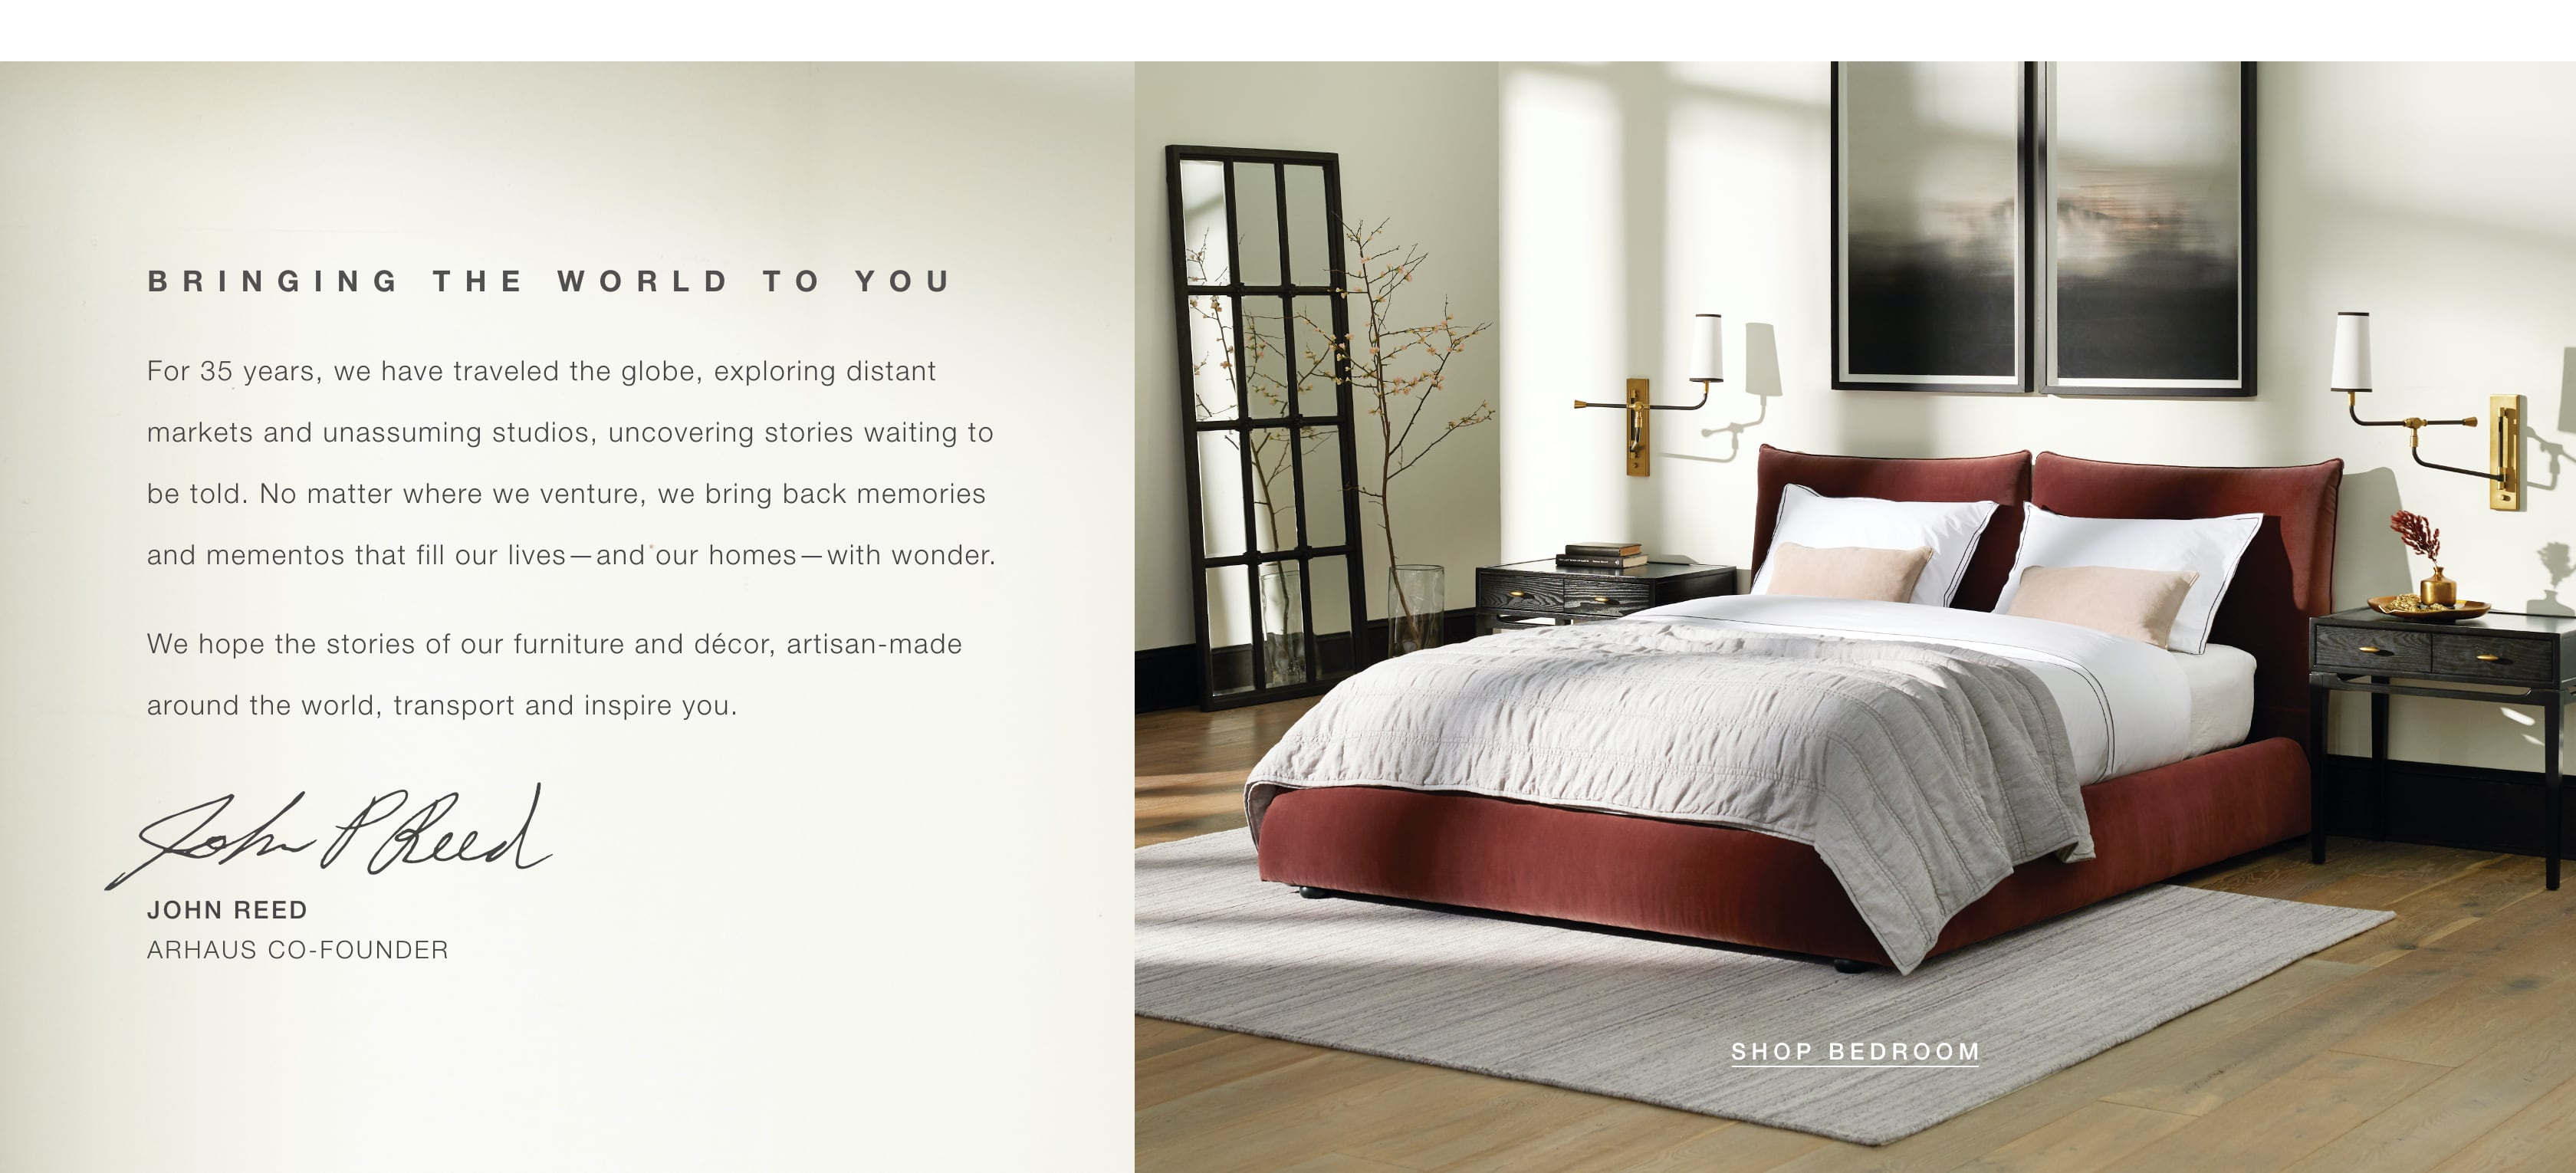 We Bring the World to You - Shop Bedroom